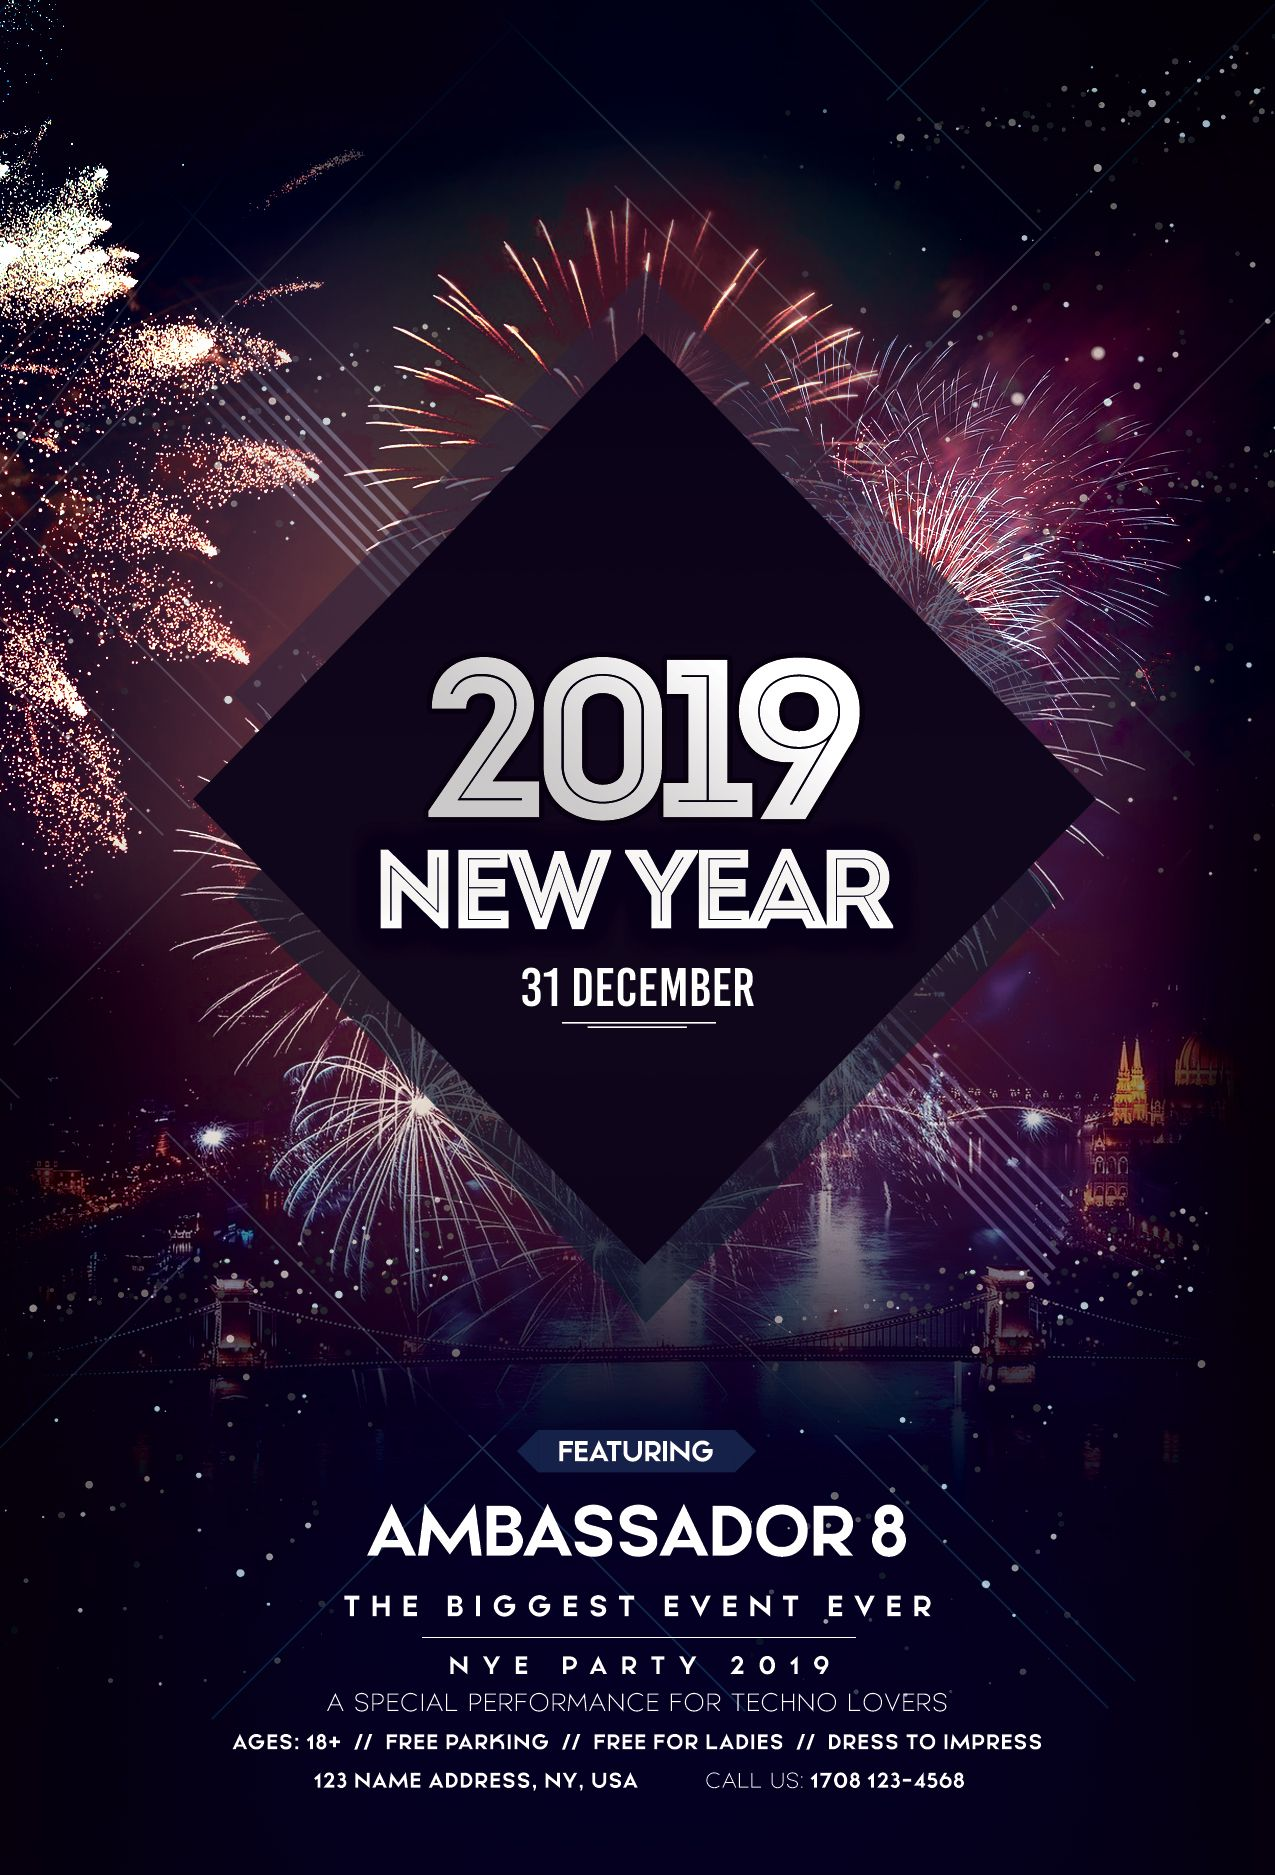 Happy New Year 2019 Free Psd Flyer Template Pixelsdesign New Year S Eve Flyer Free Psd Flyer Templates Happy New Year 2019